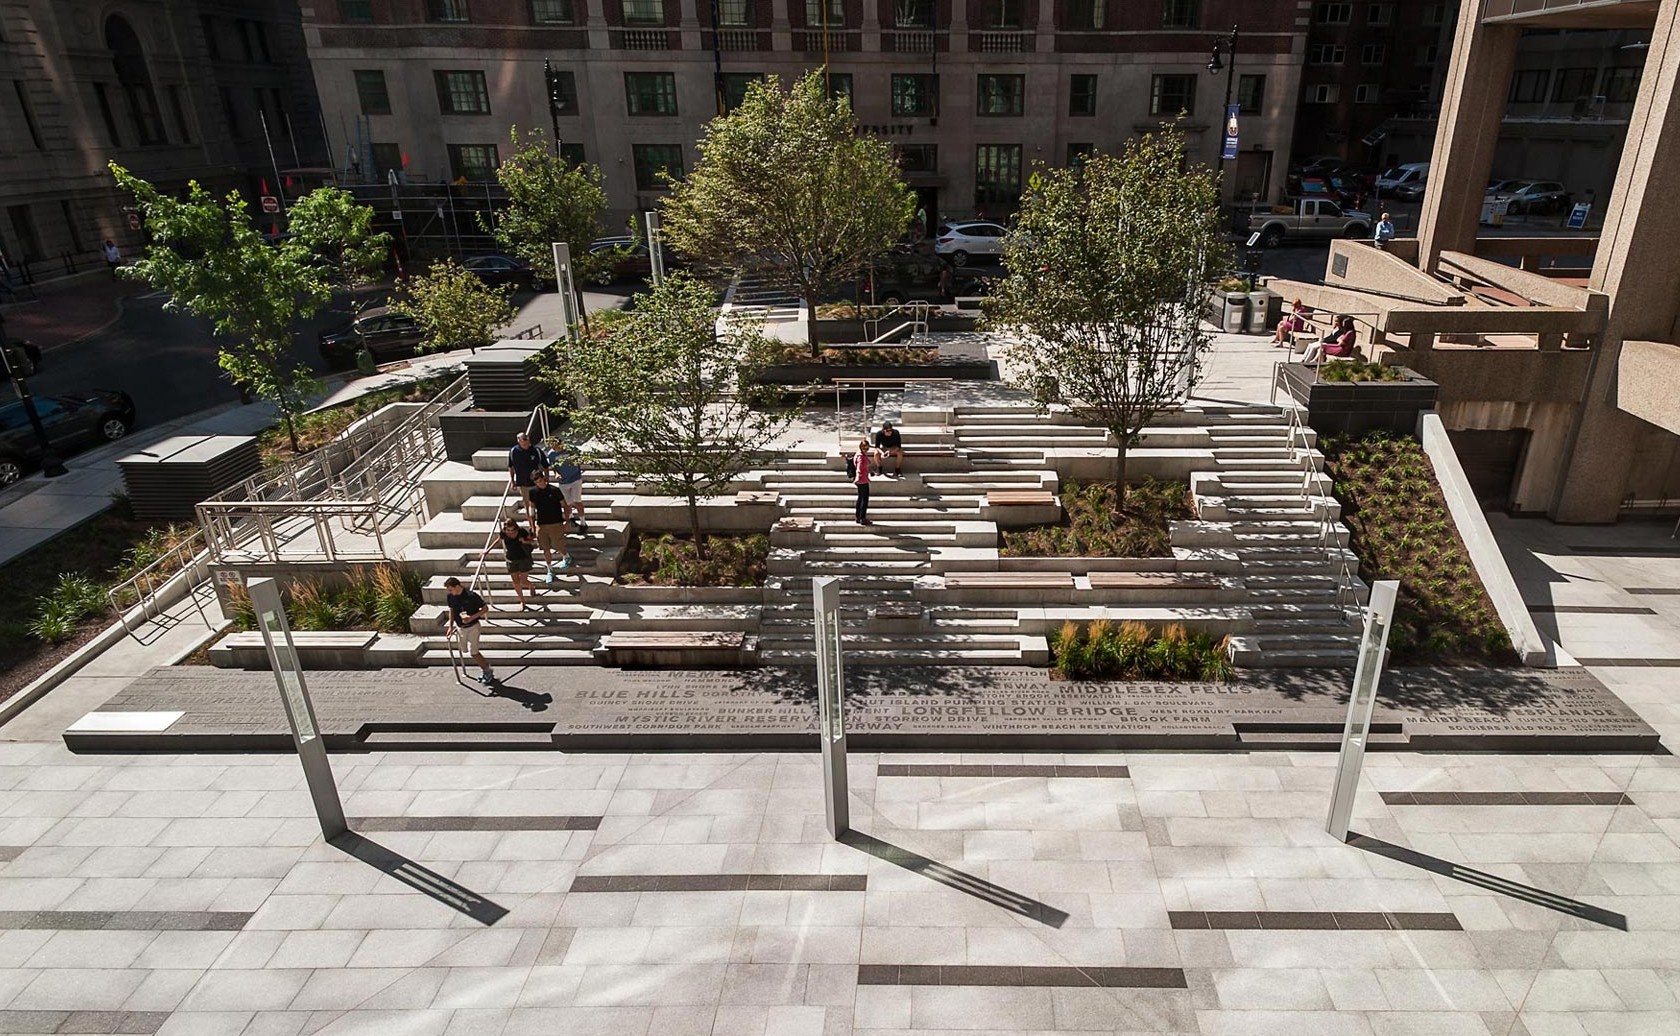 Roemer Plaza – Suffolk University | KMDG